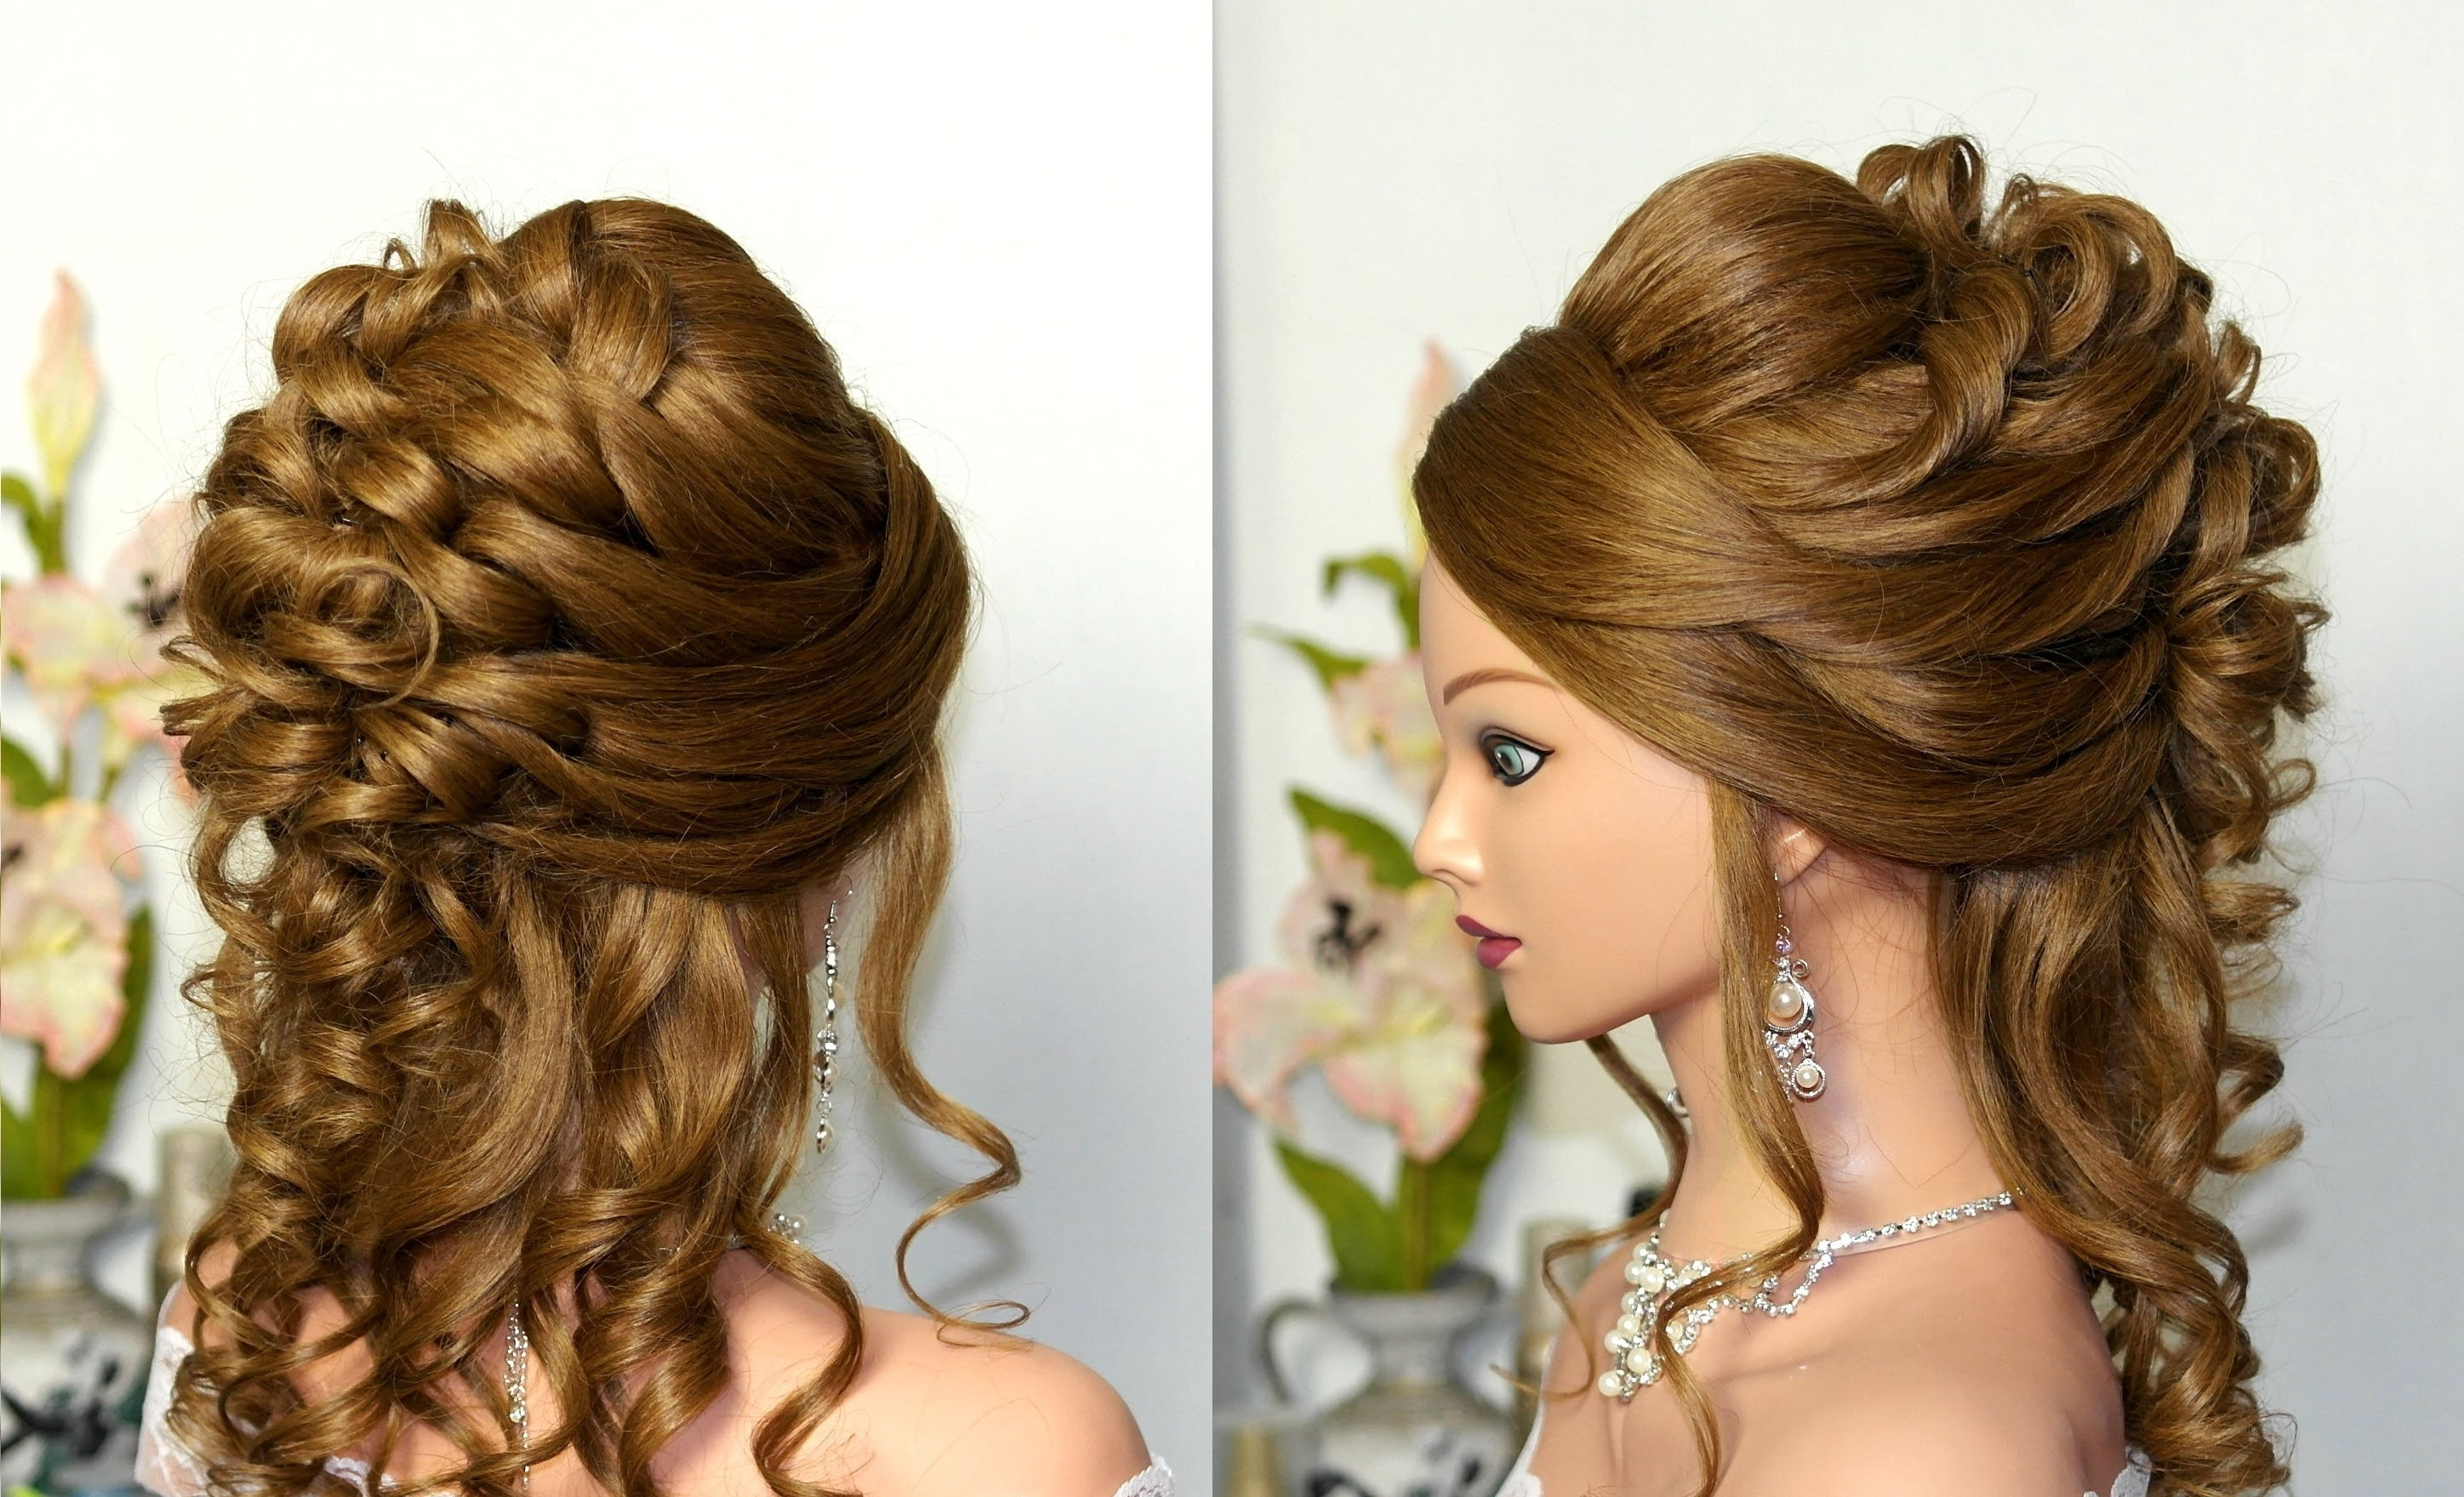 Curly Wedding Prom Hairstyle For Long Hair (View 4 of 15)